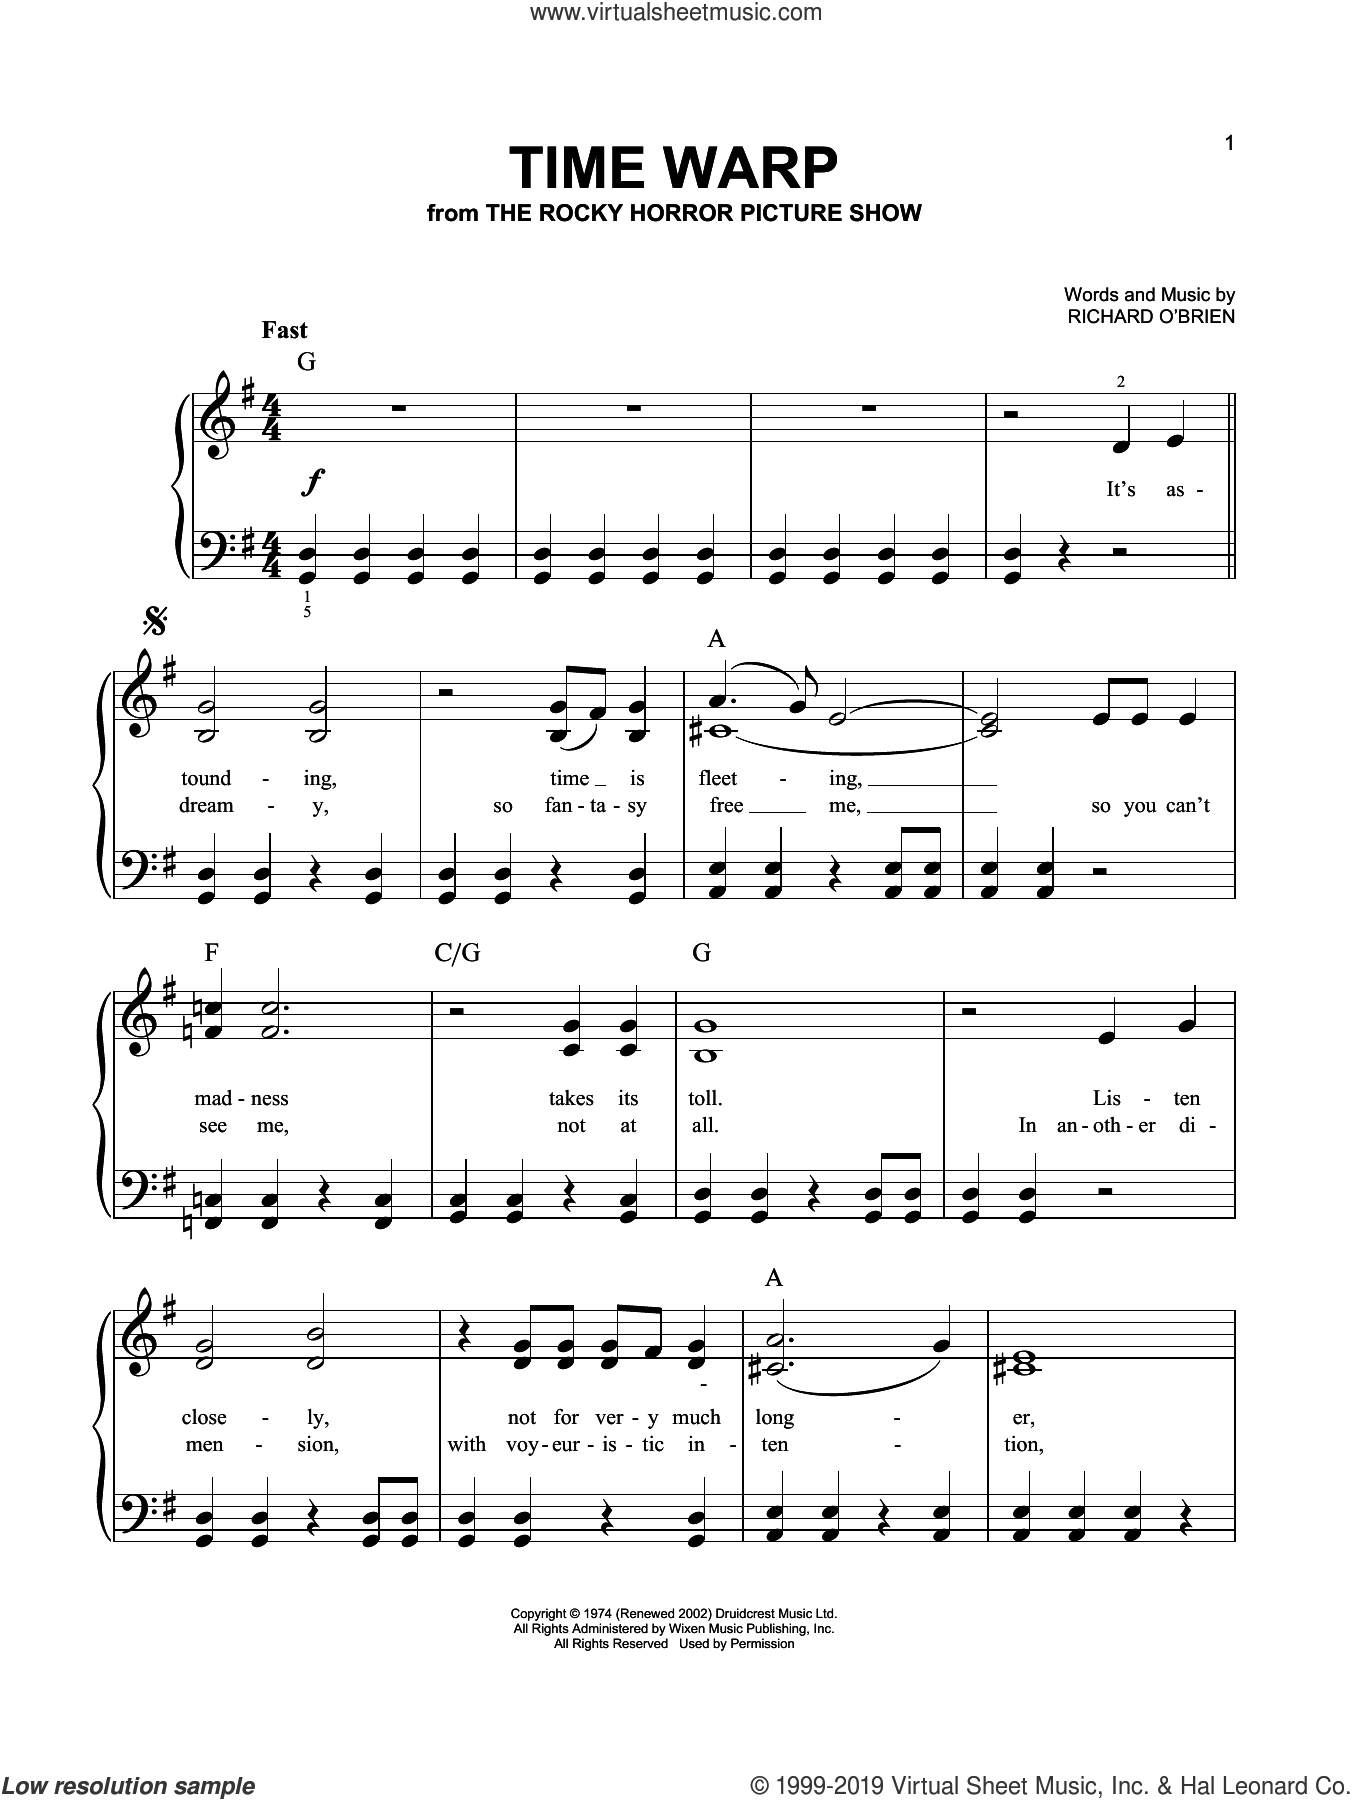 Time Warp (from The Rocky Horror Picture Show) sheet music for piano solo by Richard O'Brien, easy skill level